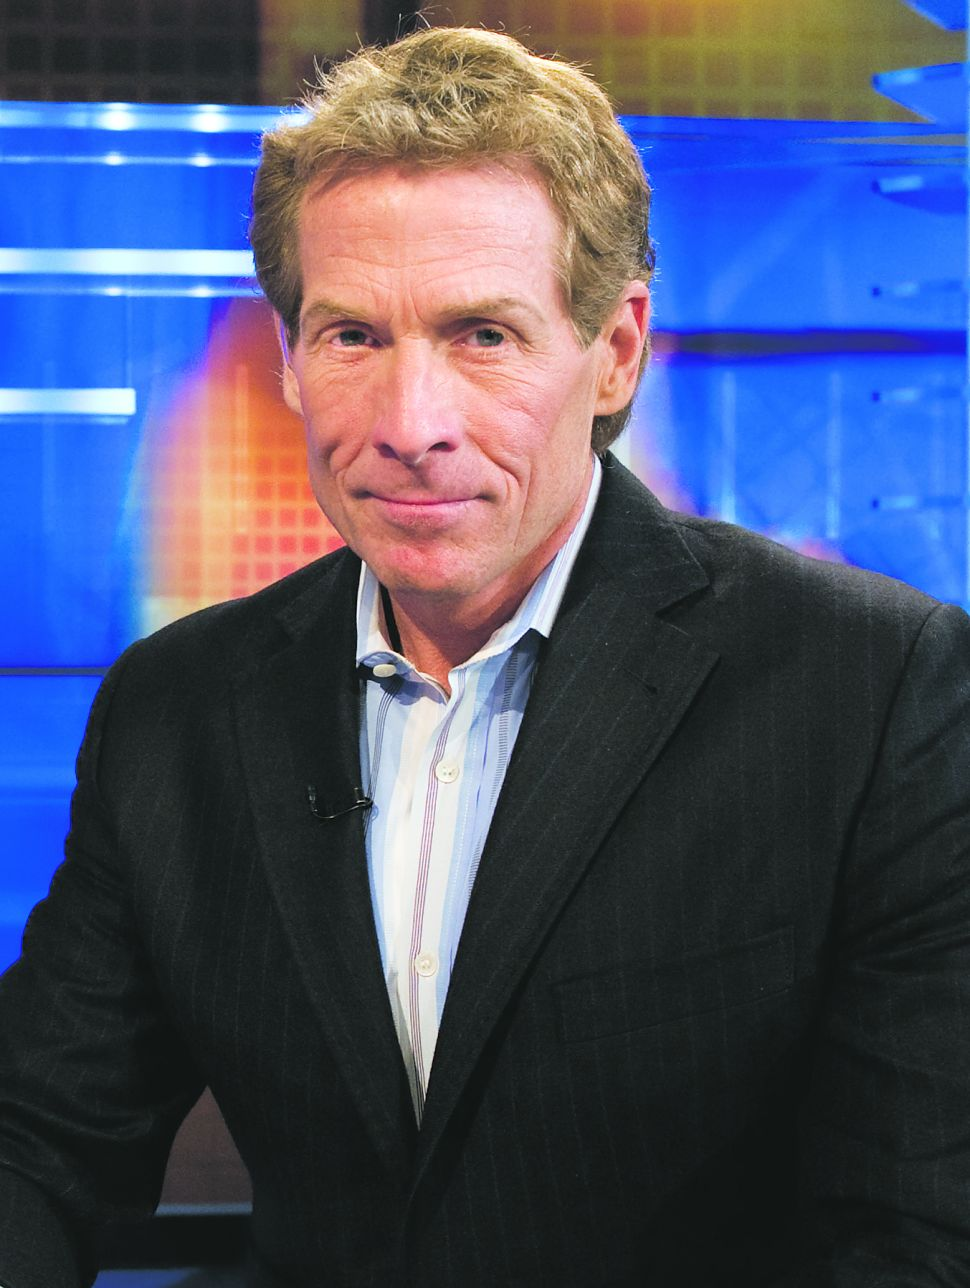 Skip Bayless FTW? One-on-One With ESPN's Top Trash Talker